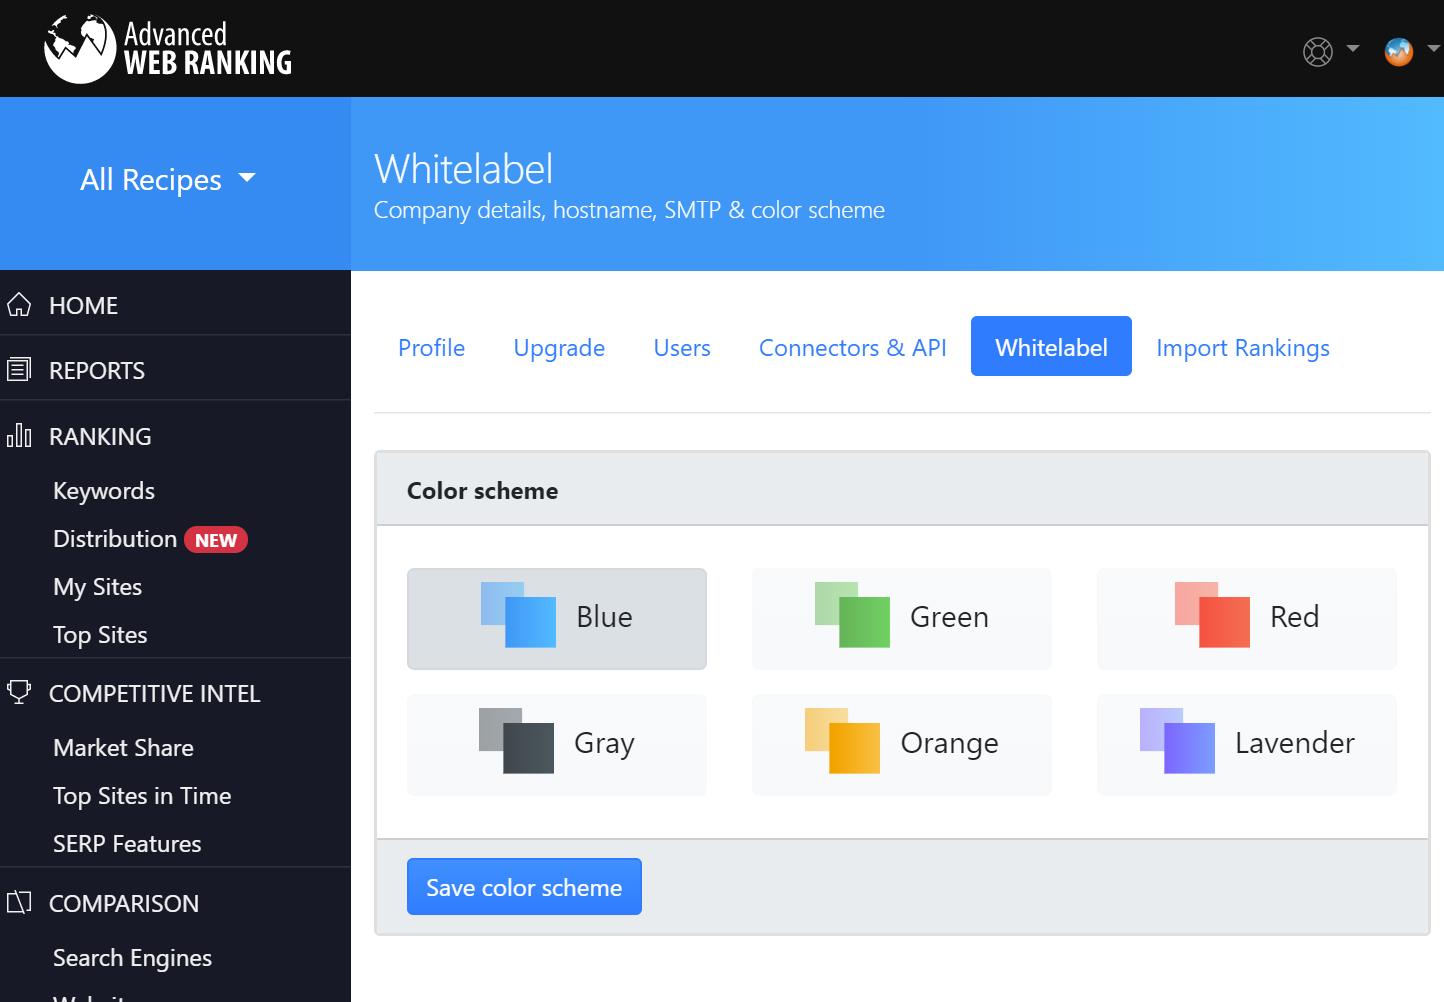 Color schemes available in Advanced Web Ranking for UI customization.